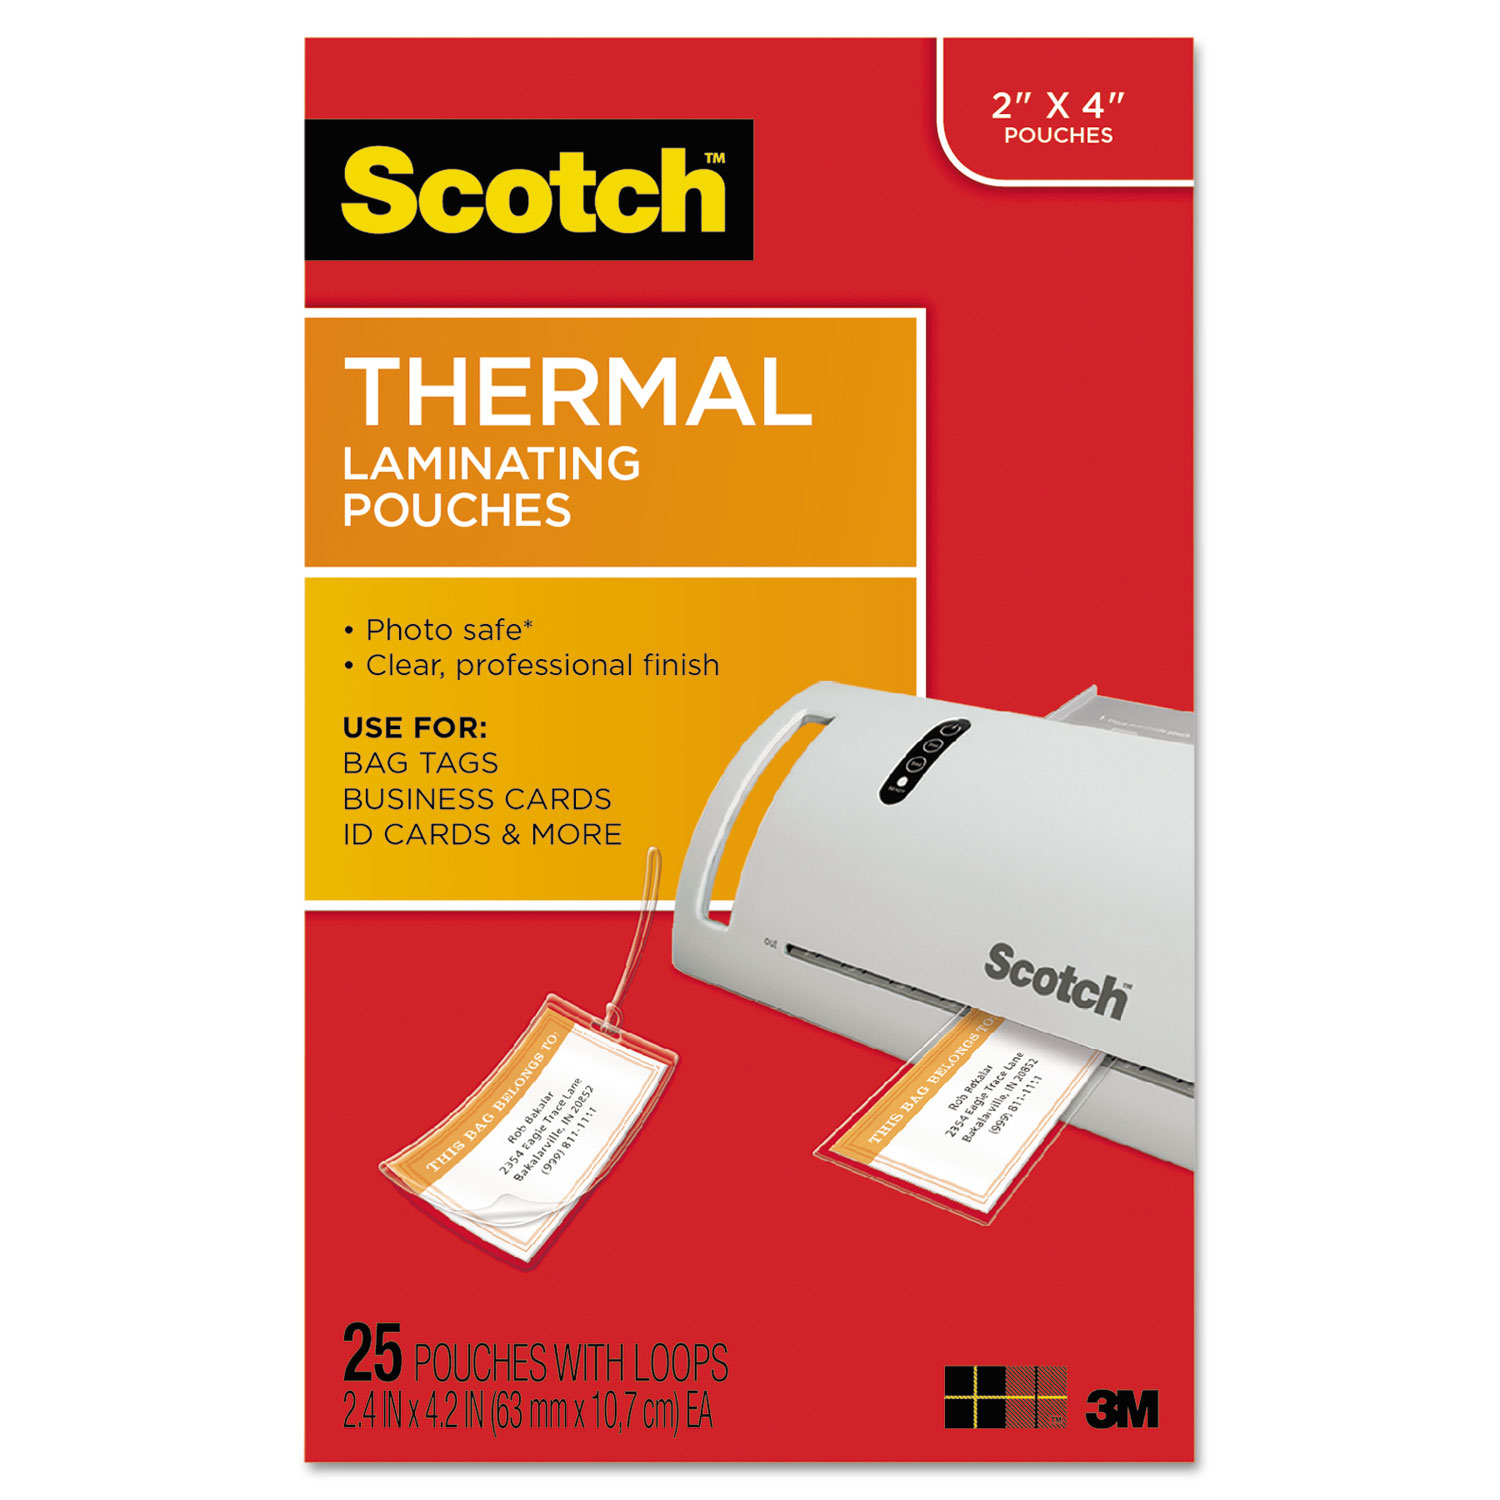 Luggage Tag Size Thermal Laminating Pouches By Scotch